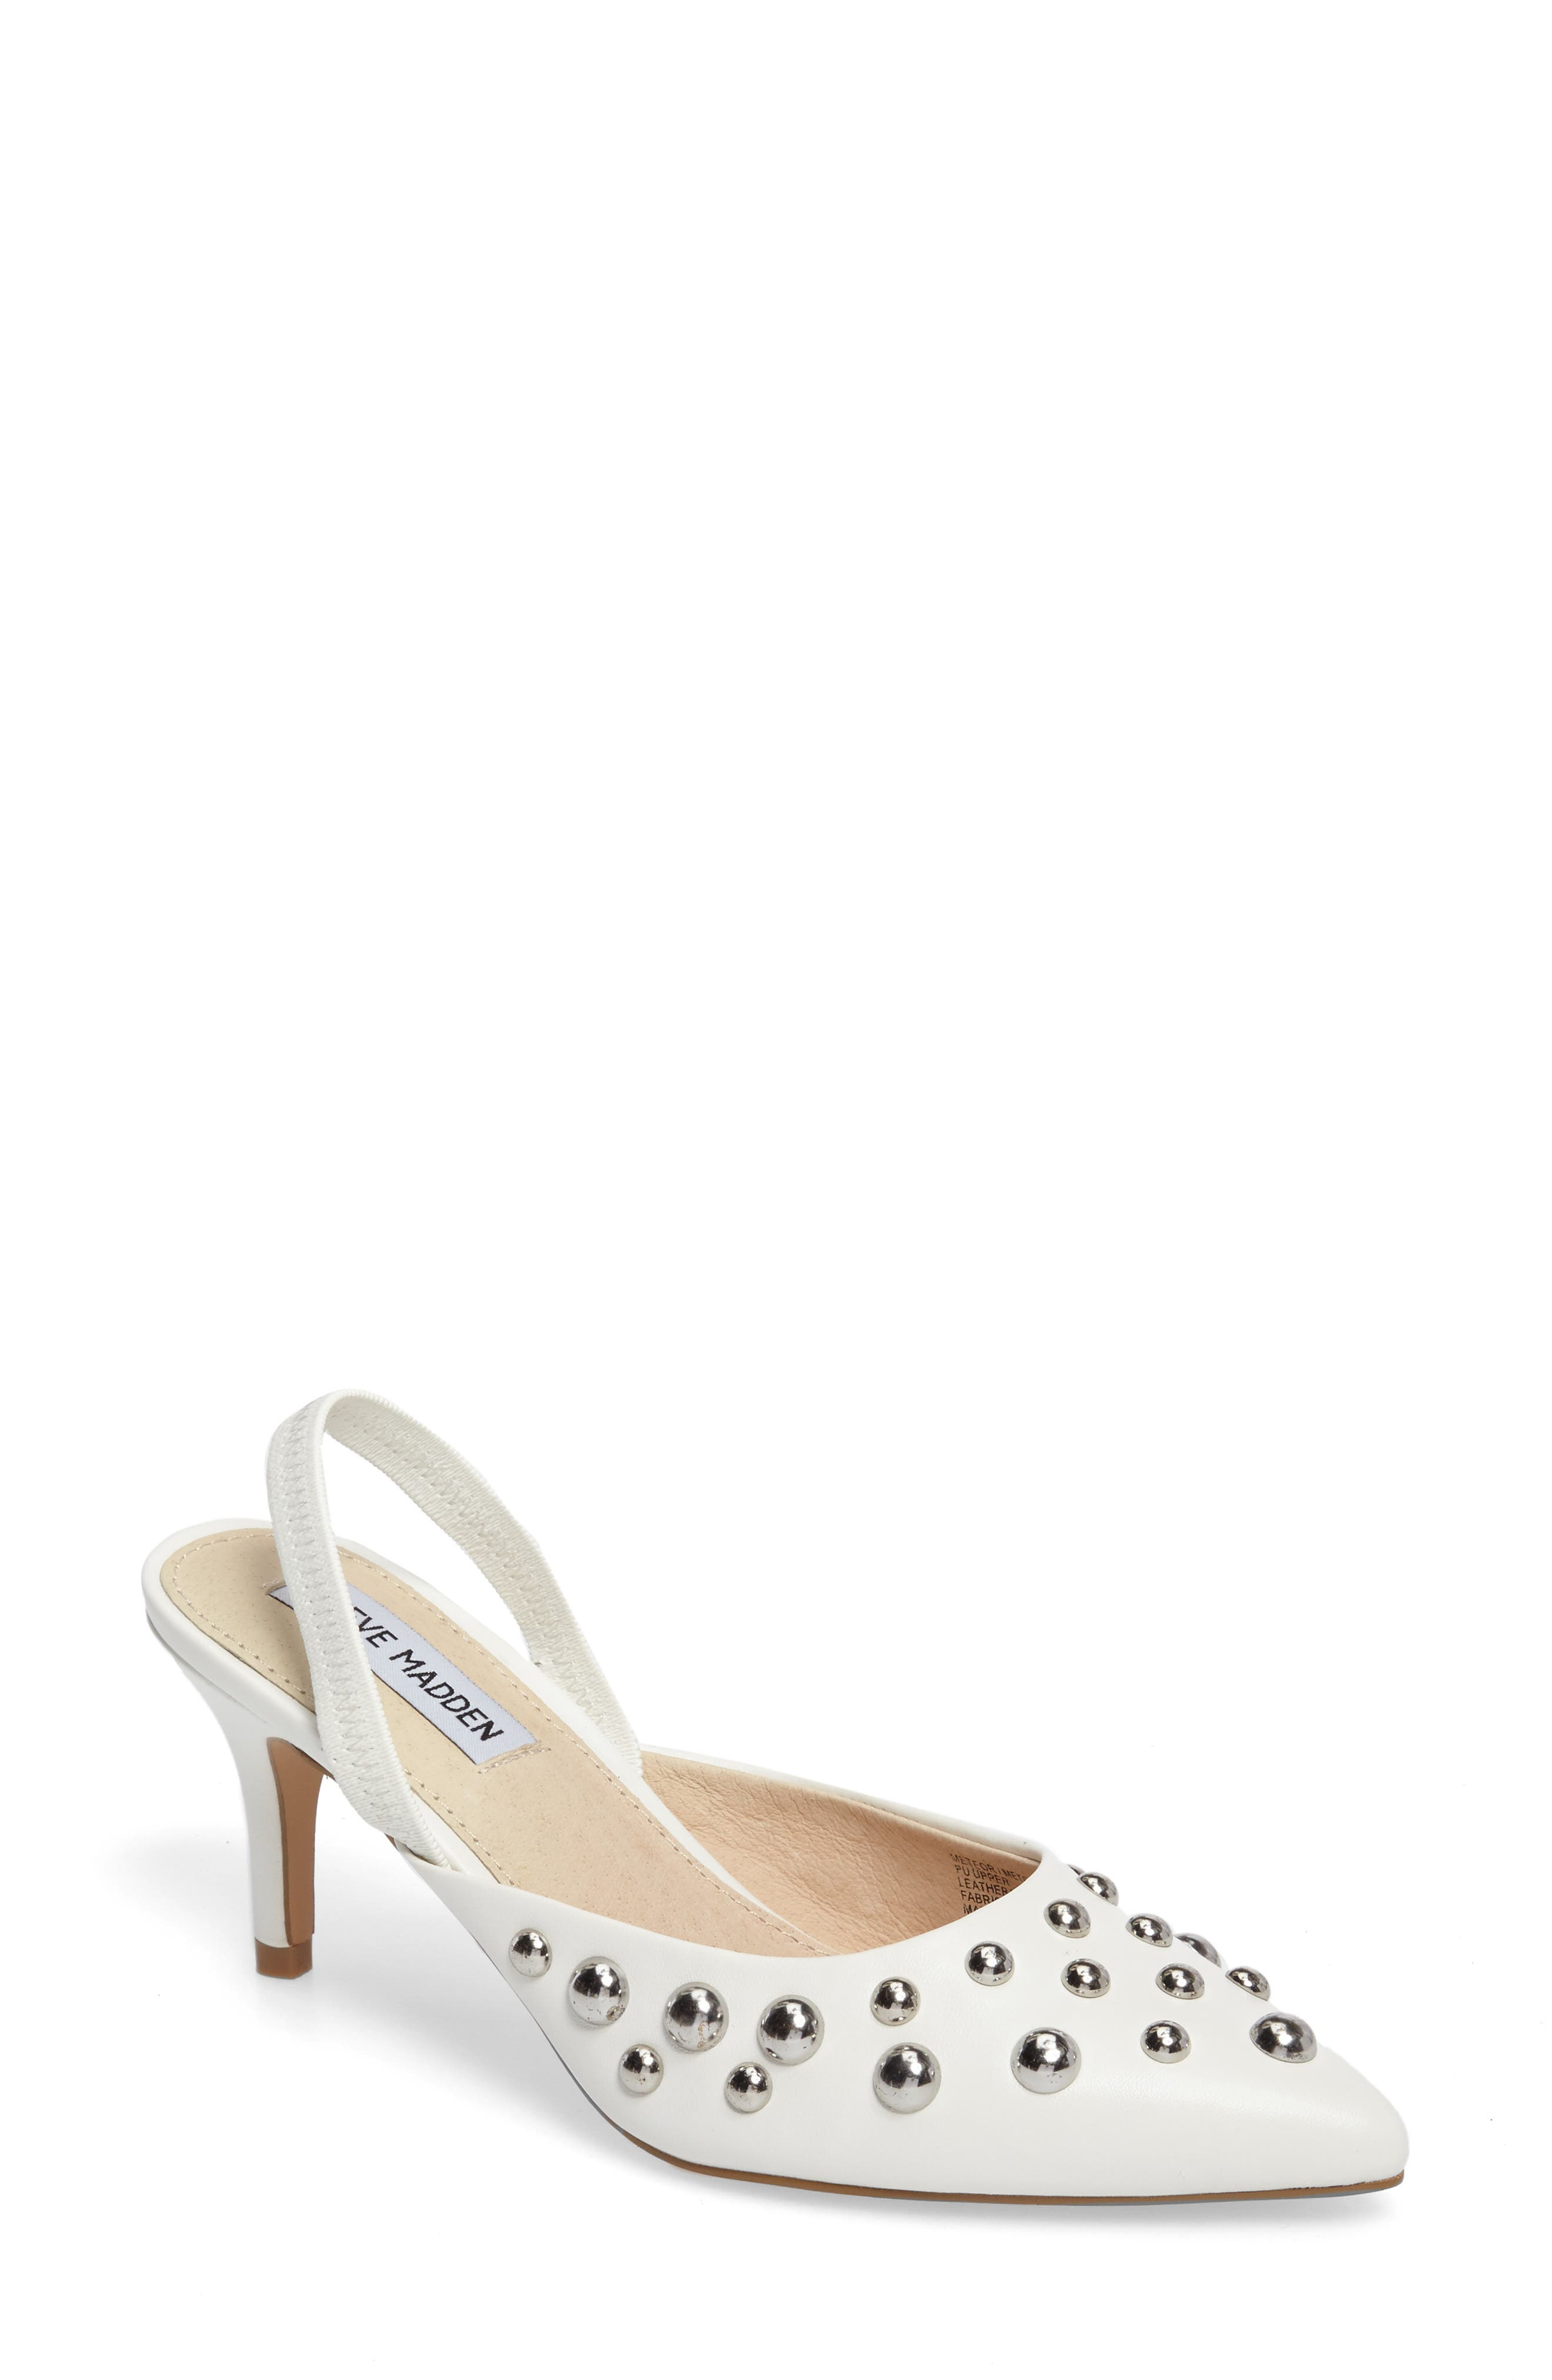 Meteor Studded Pump,                         Main,                         color, White Faux Leather